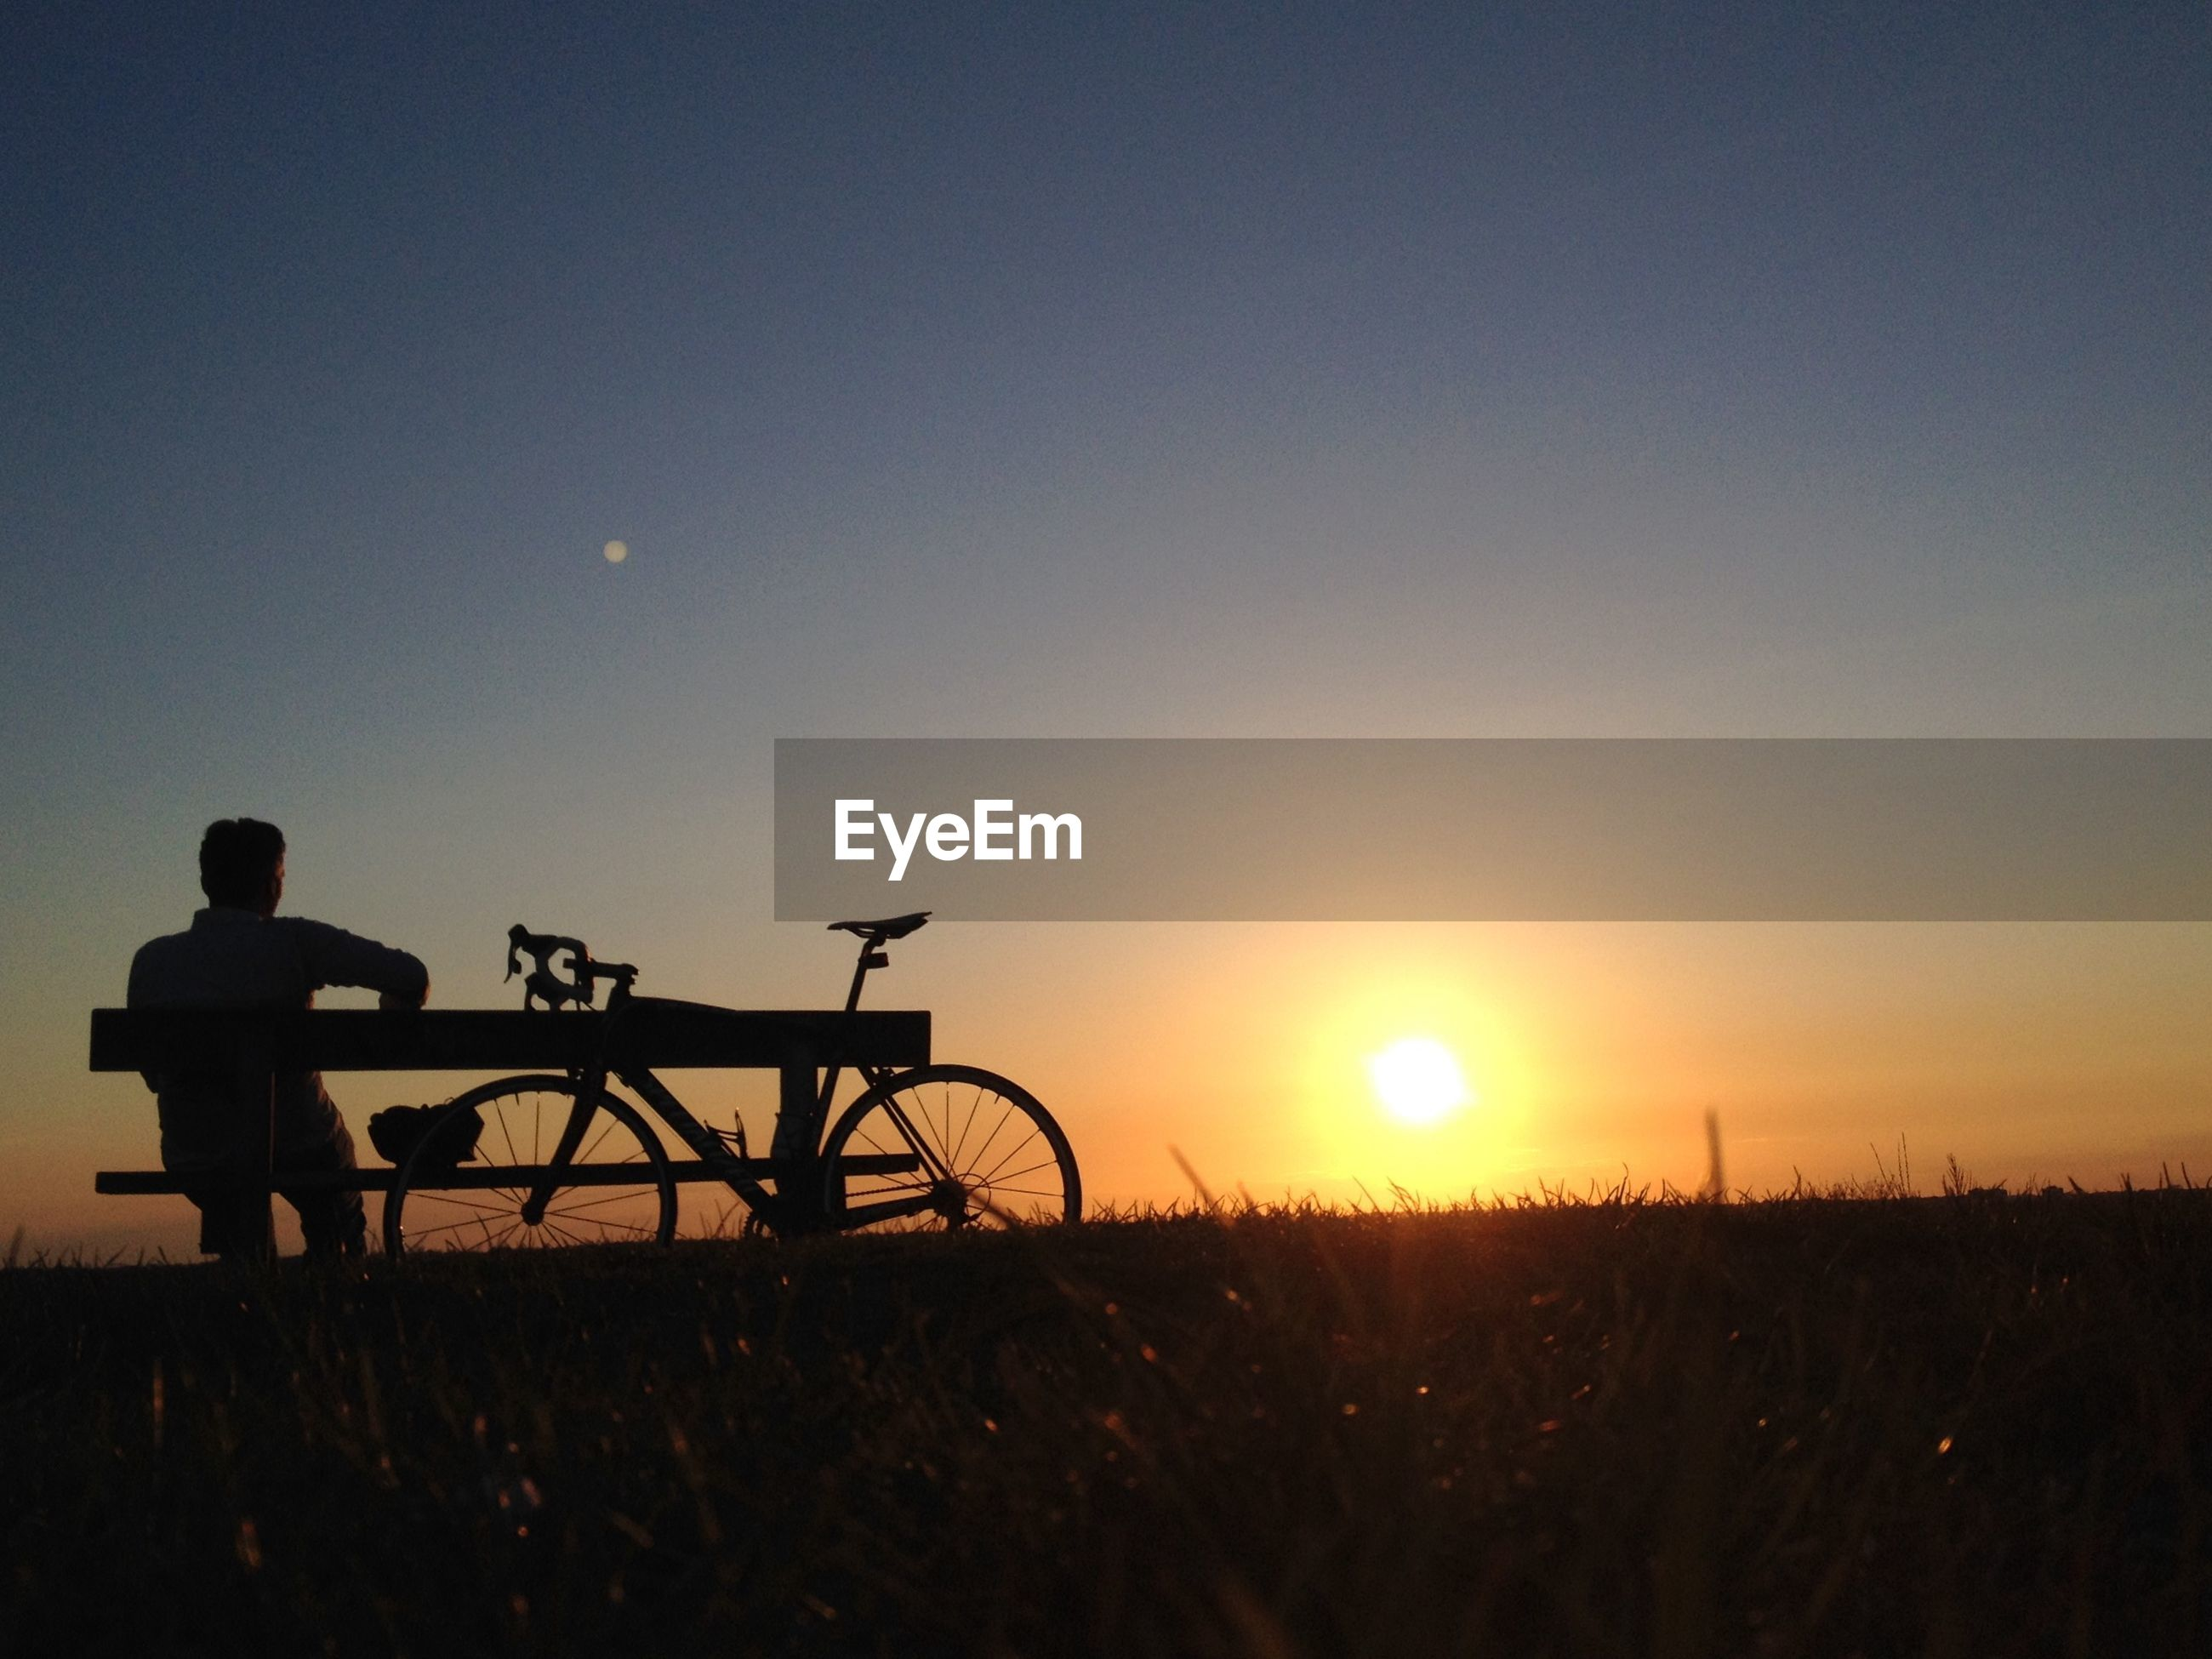 Rear view of man sitting on bench by bicycle at field against sky during sunset